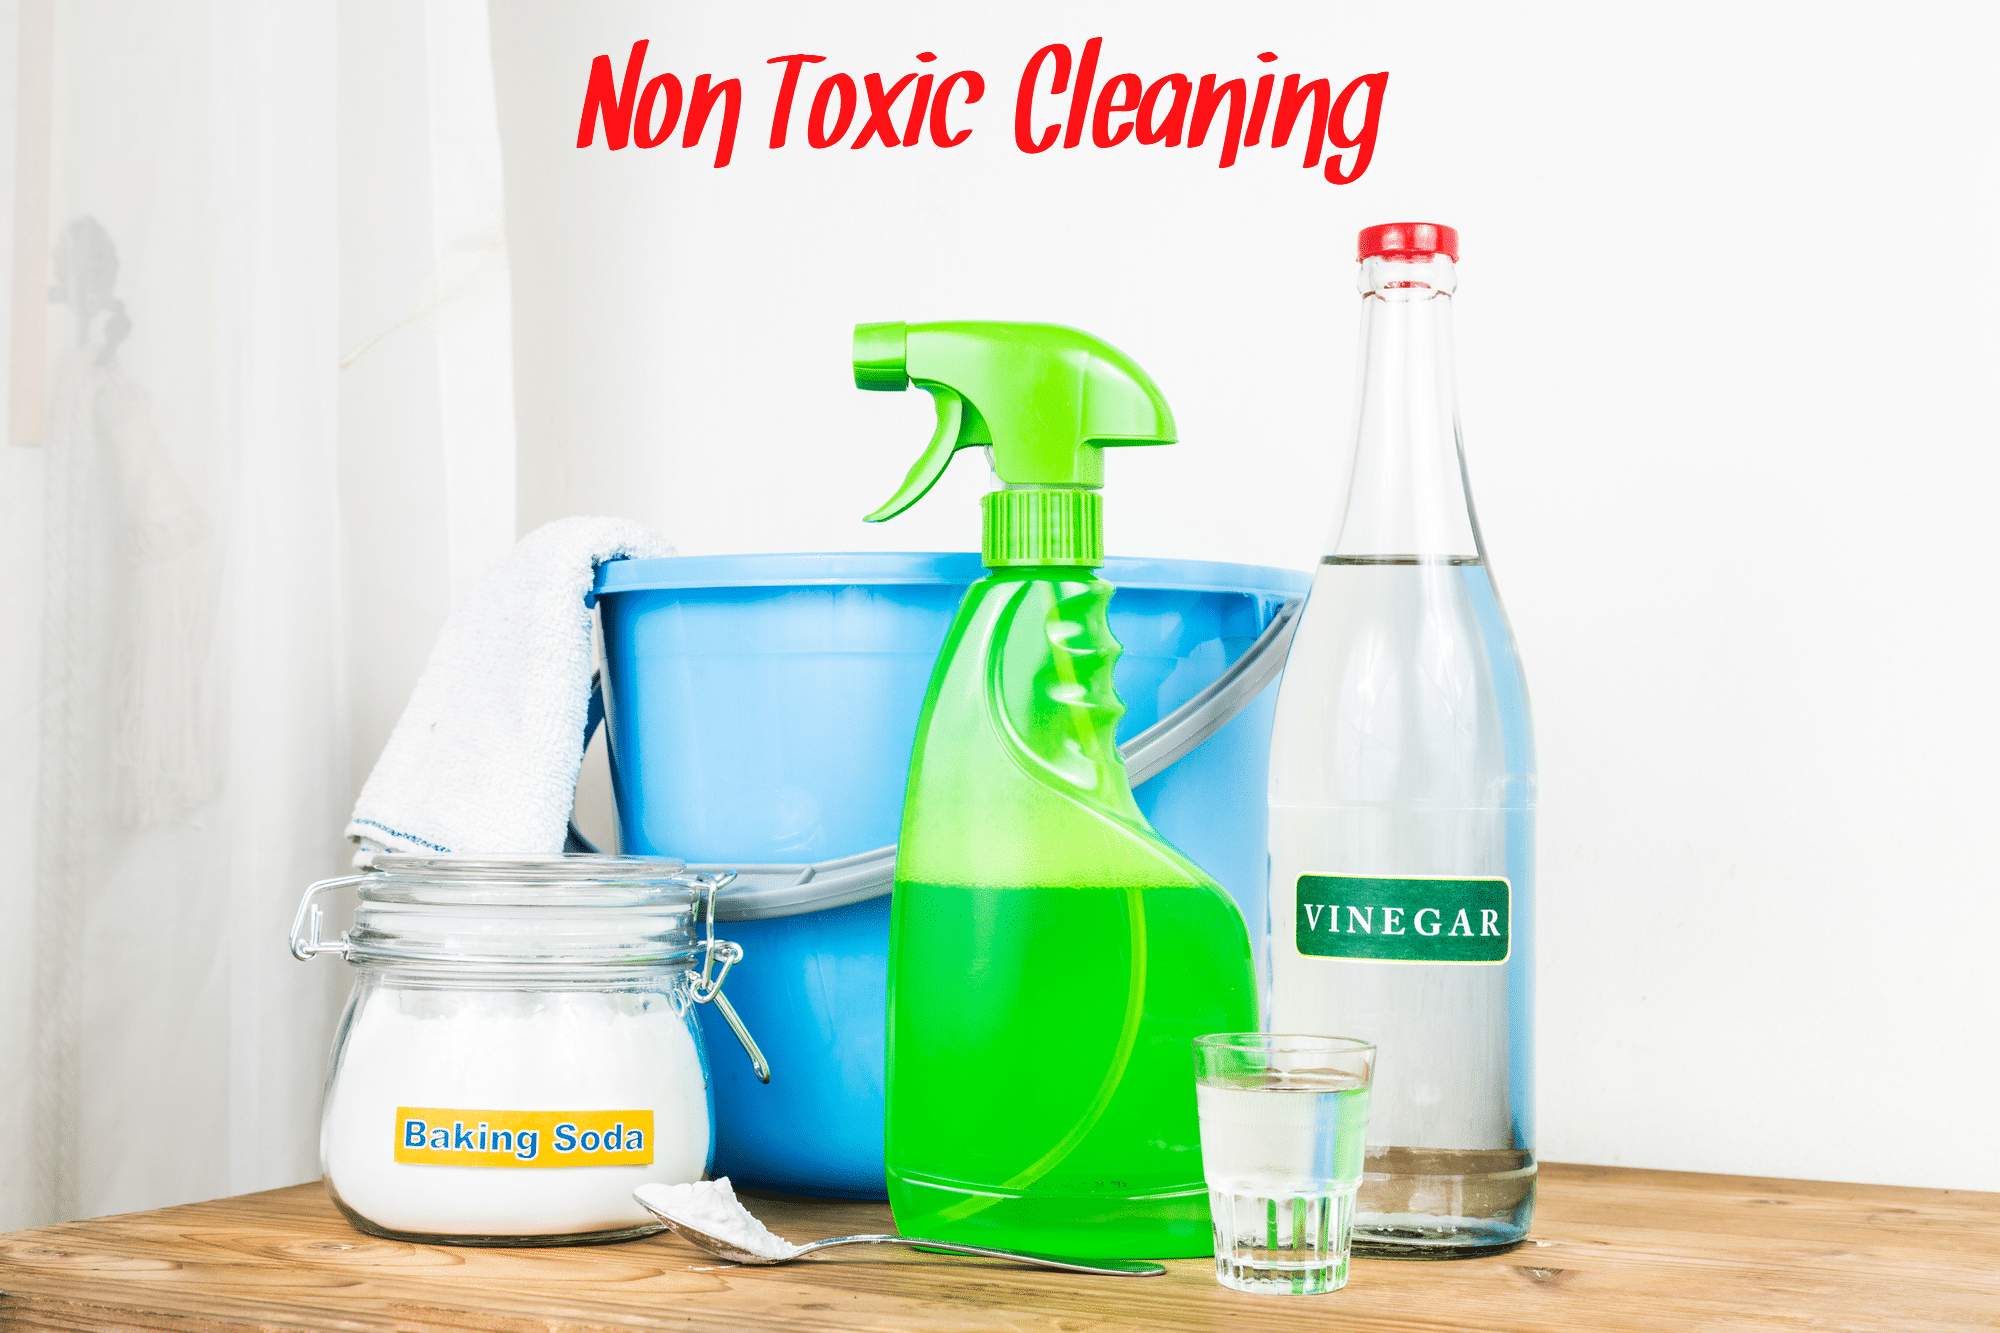 A blue plastic bucket, a bottle of white vinegar, a jar of baking soda, a green spray bottle, and a measuring cup. All part of non toxic cleaning recipes.